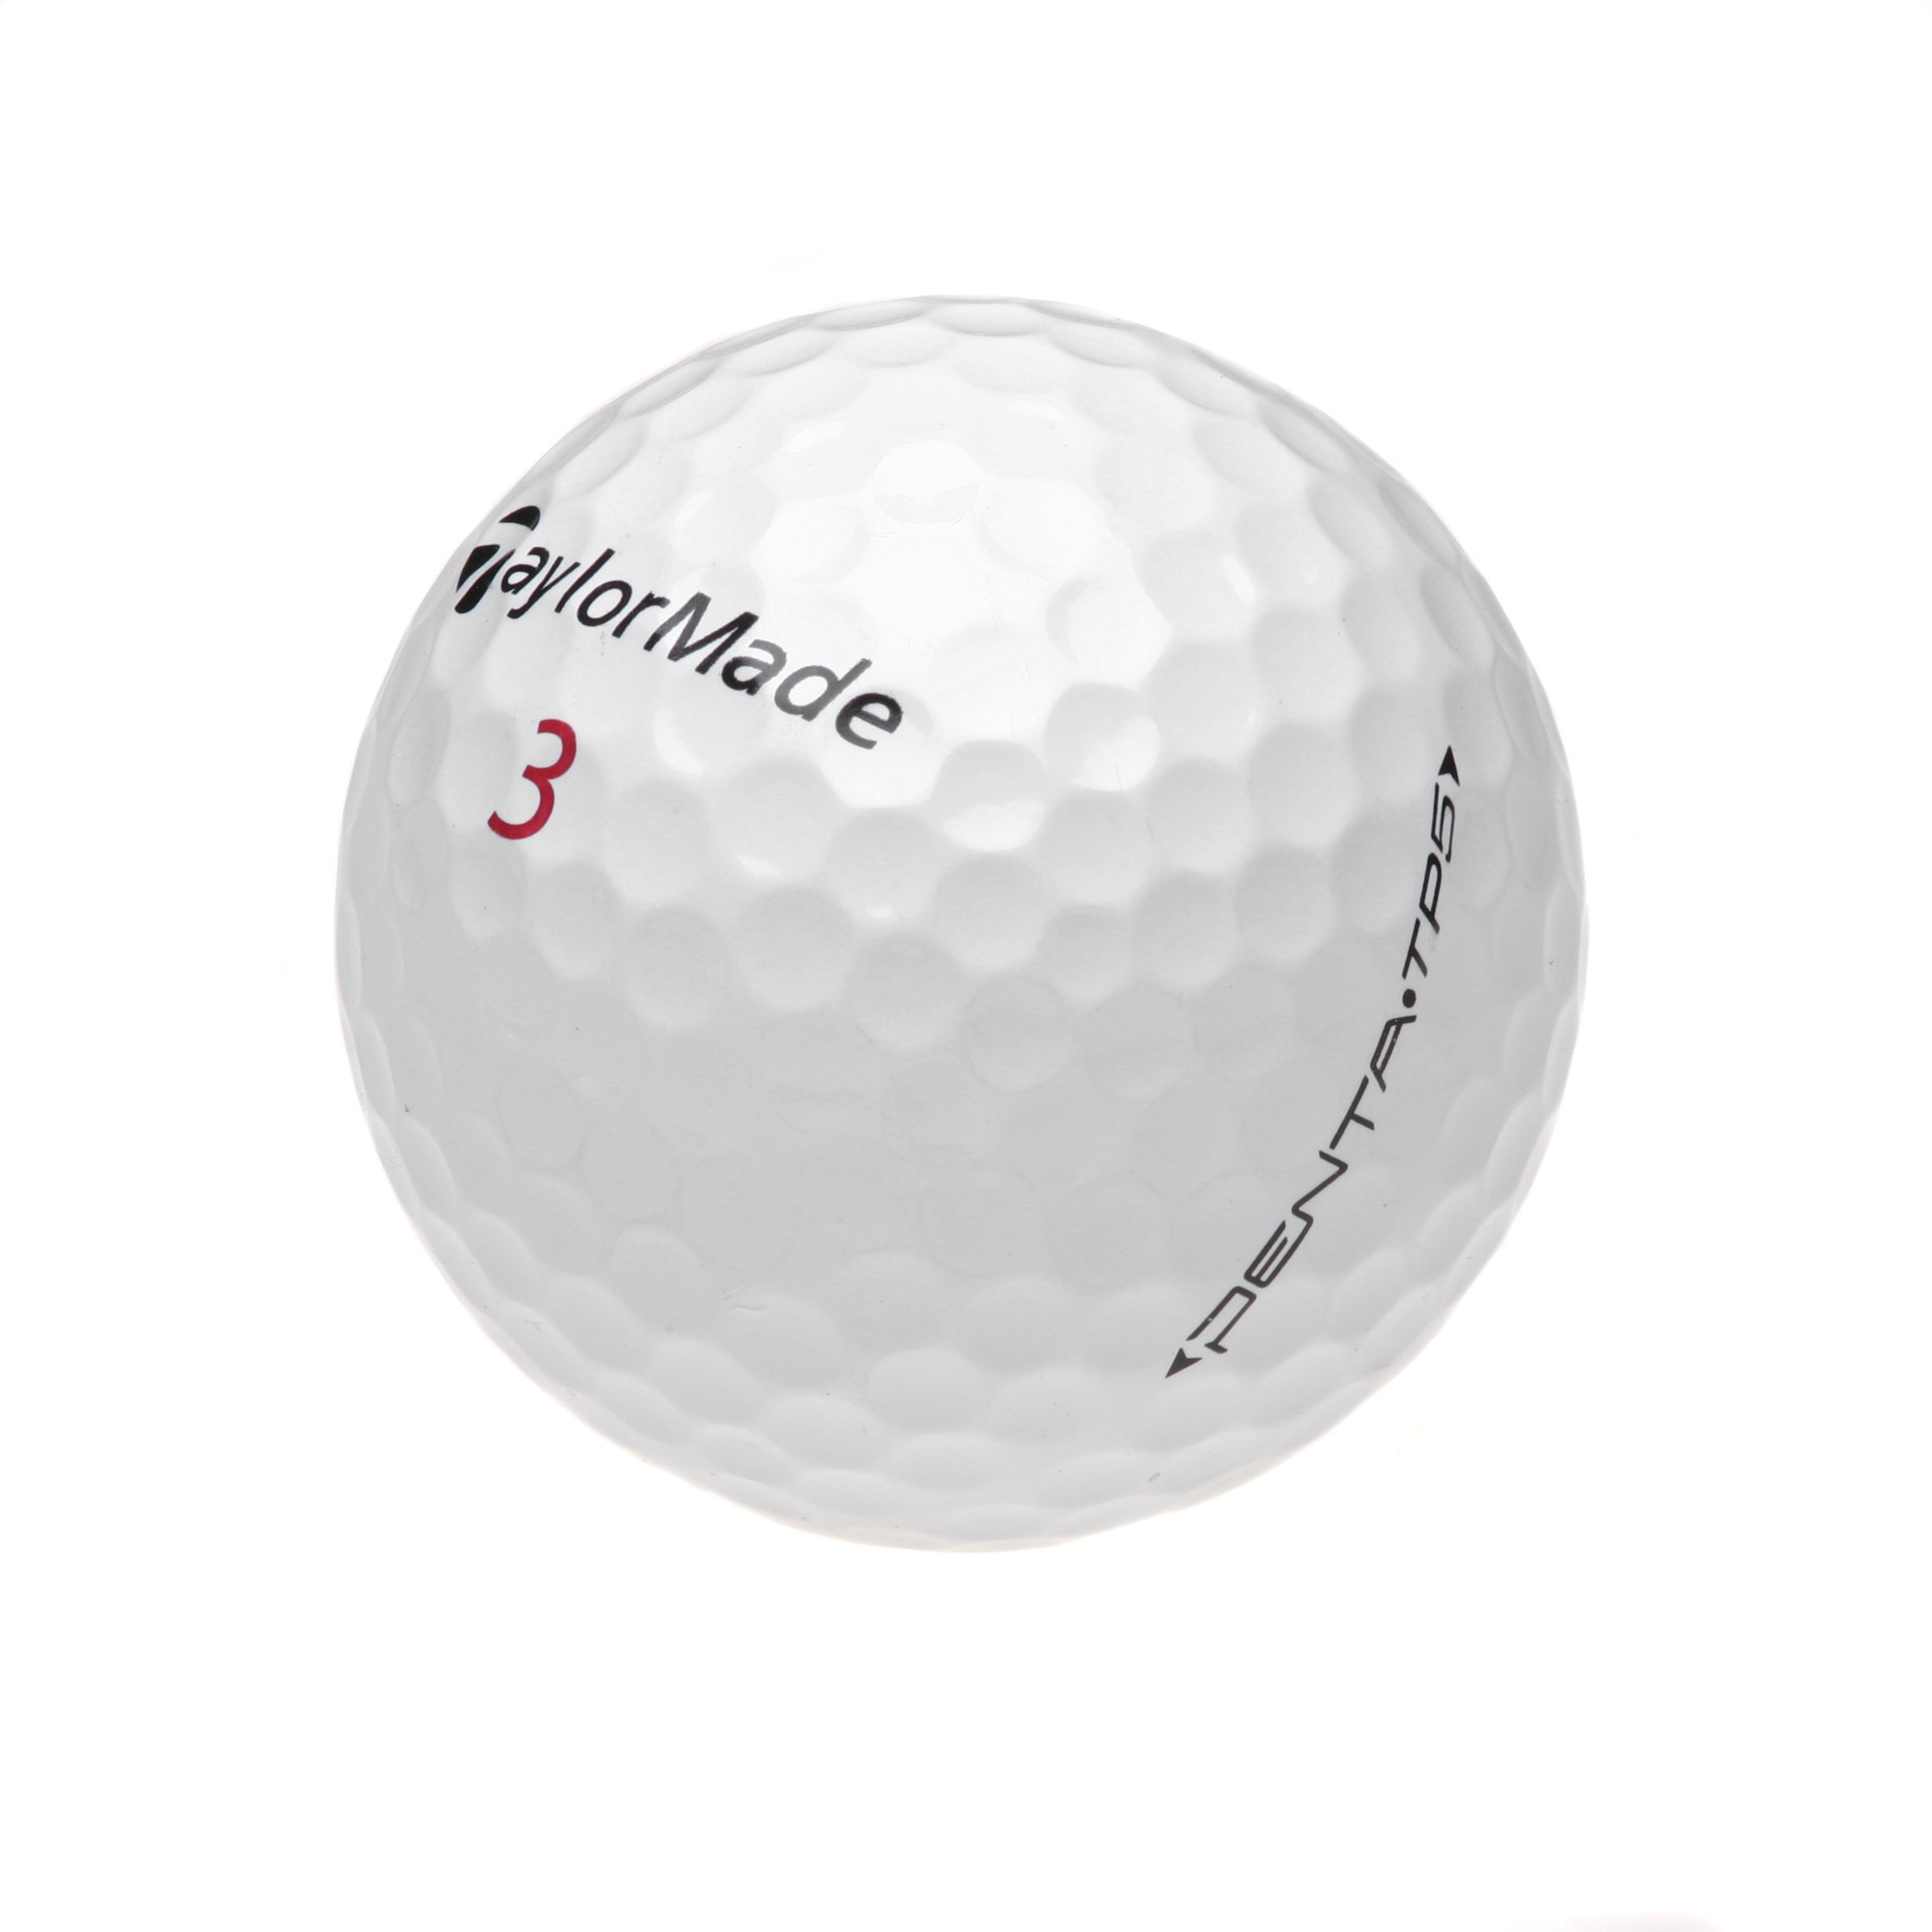 TaylorMade Penta TP5 36 Recycled Almost Mint Golf Balls by TaylorMade